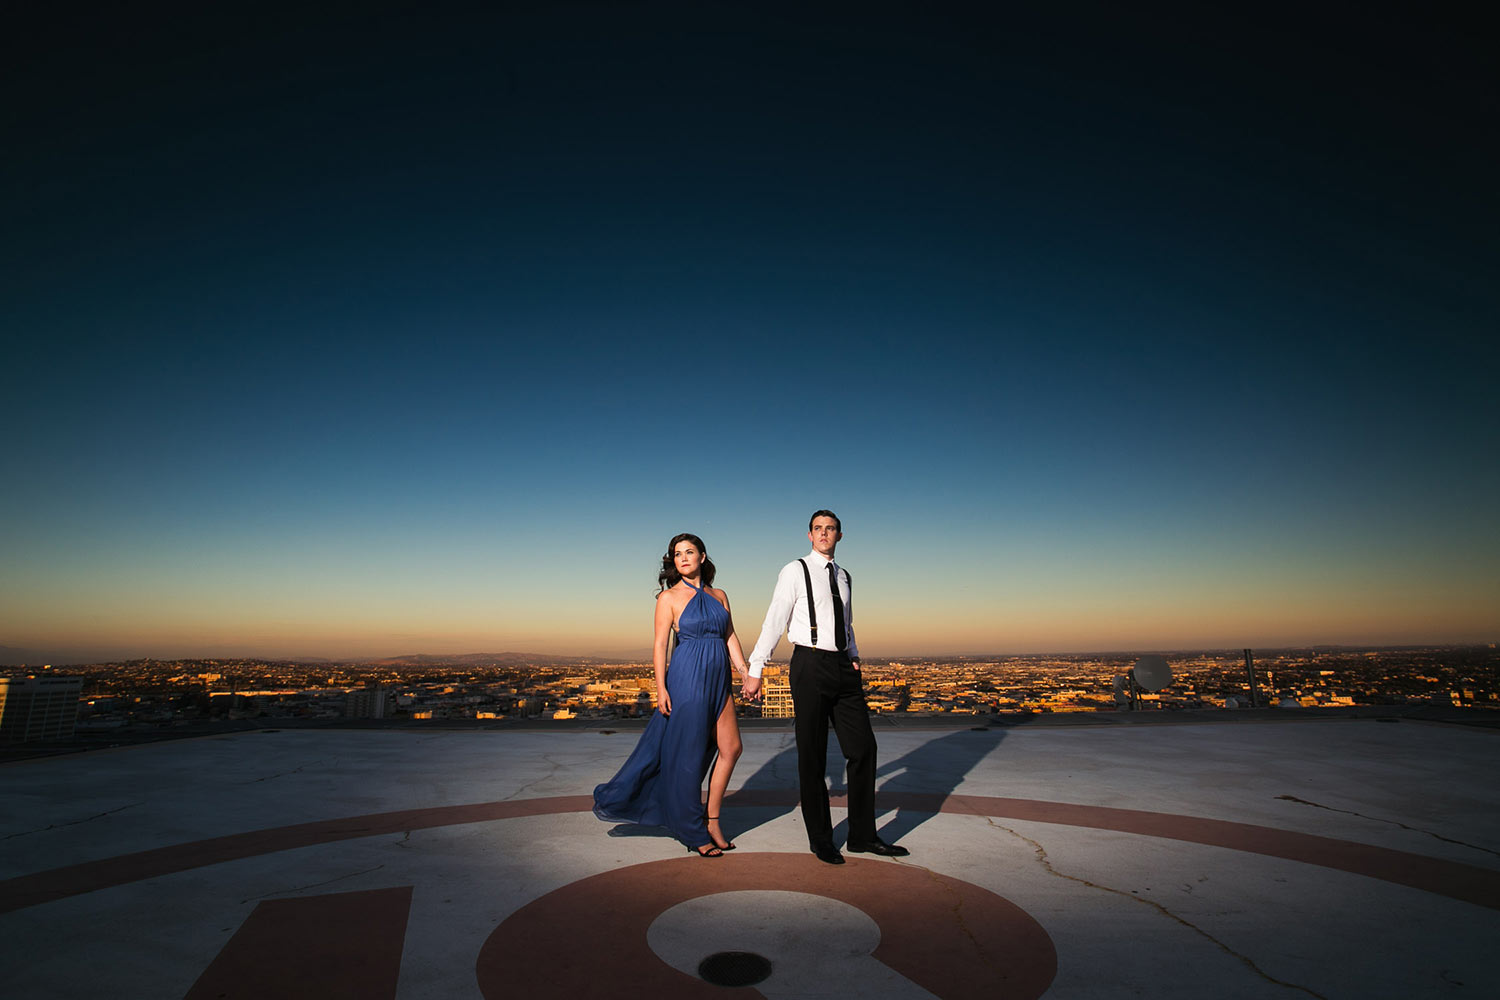 Fashion-inspired Downtown Los Angeles Engagement photo on a helicopter pad